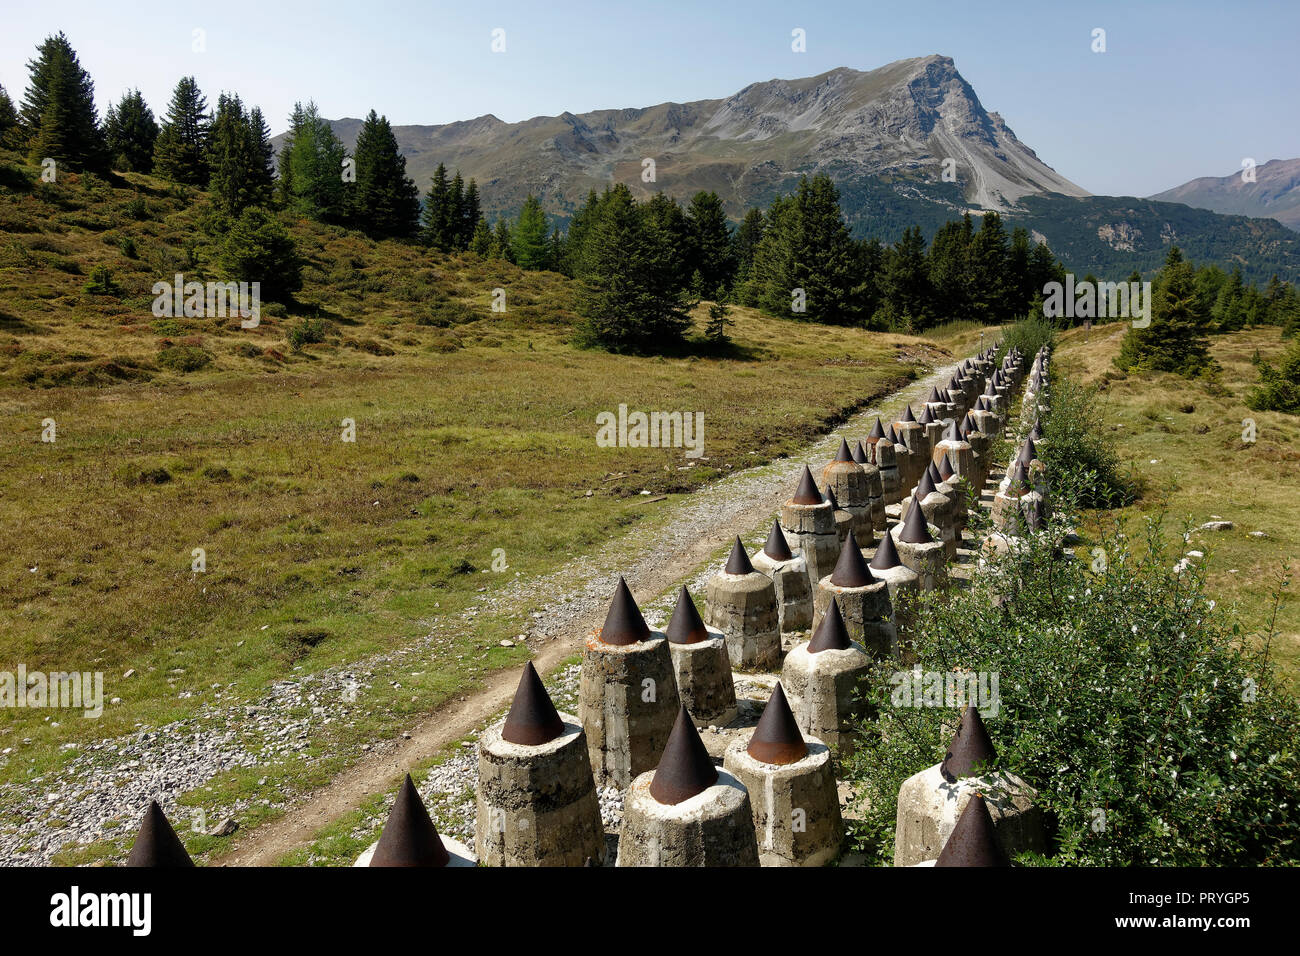 Tank barrier, defence system Plamort, World War II, to protect Italy from Nazi Germany, near Biotop Plamorter moss, raised bog - Stock Image